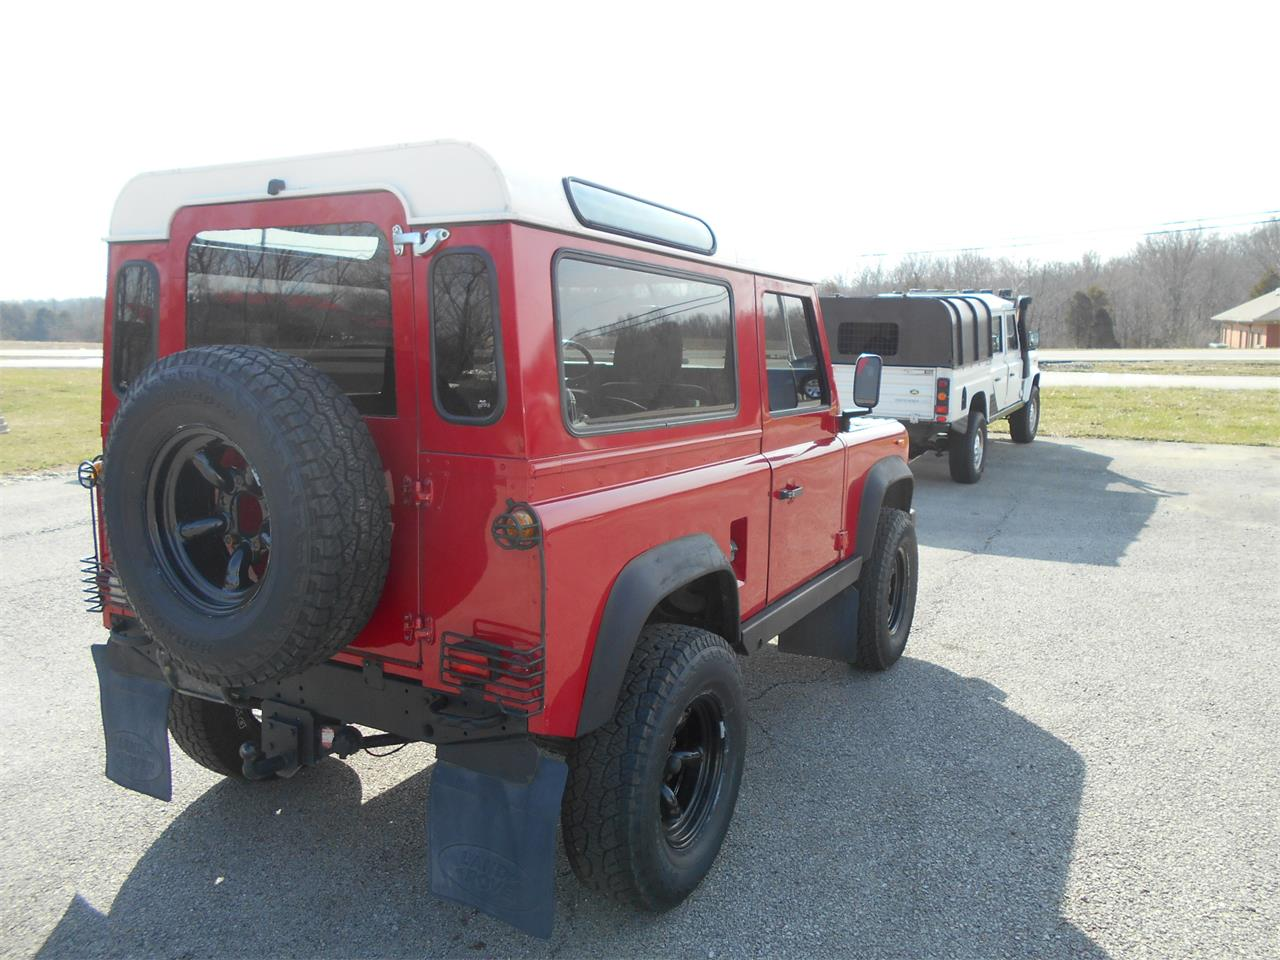 Large Picture of '91 Defender located in La Grange Kentucky - $34,000.00 Offered by a Private Seller - N4MA